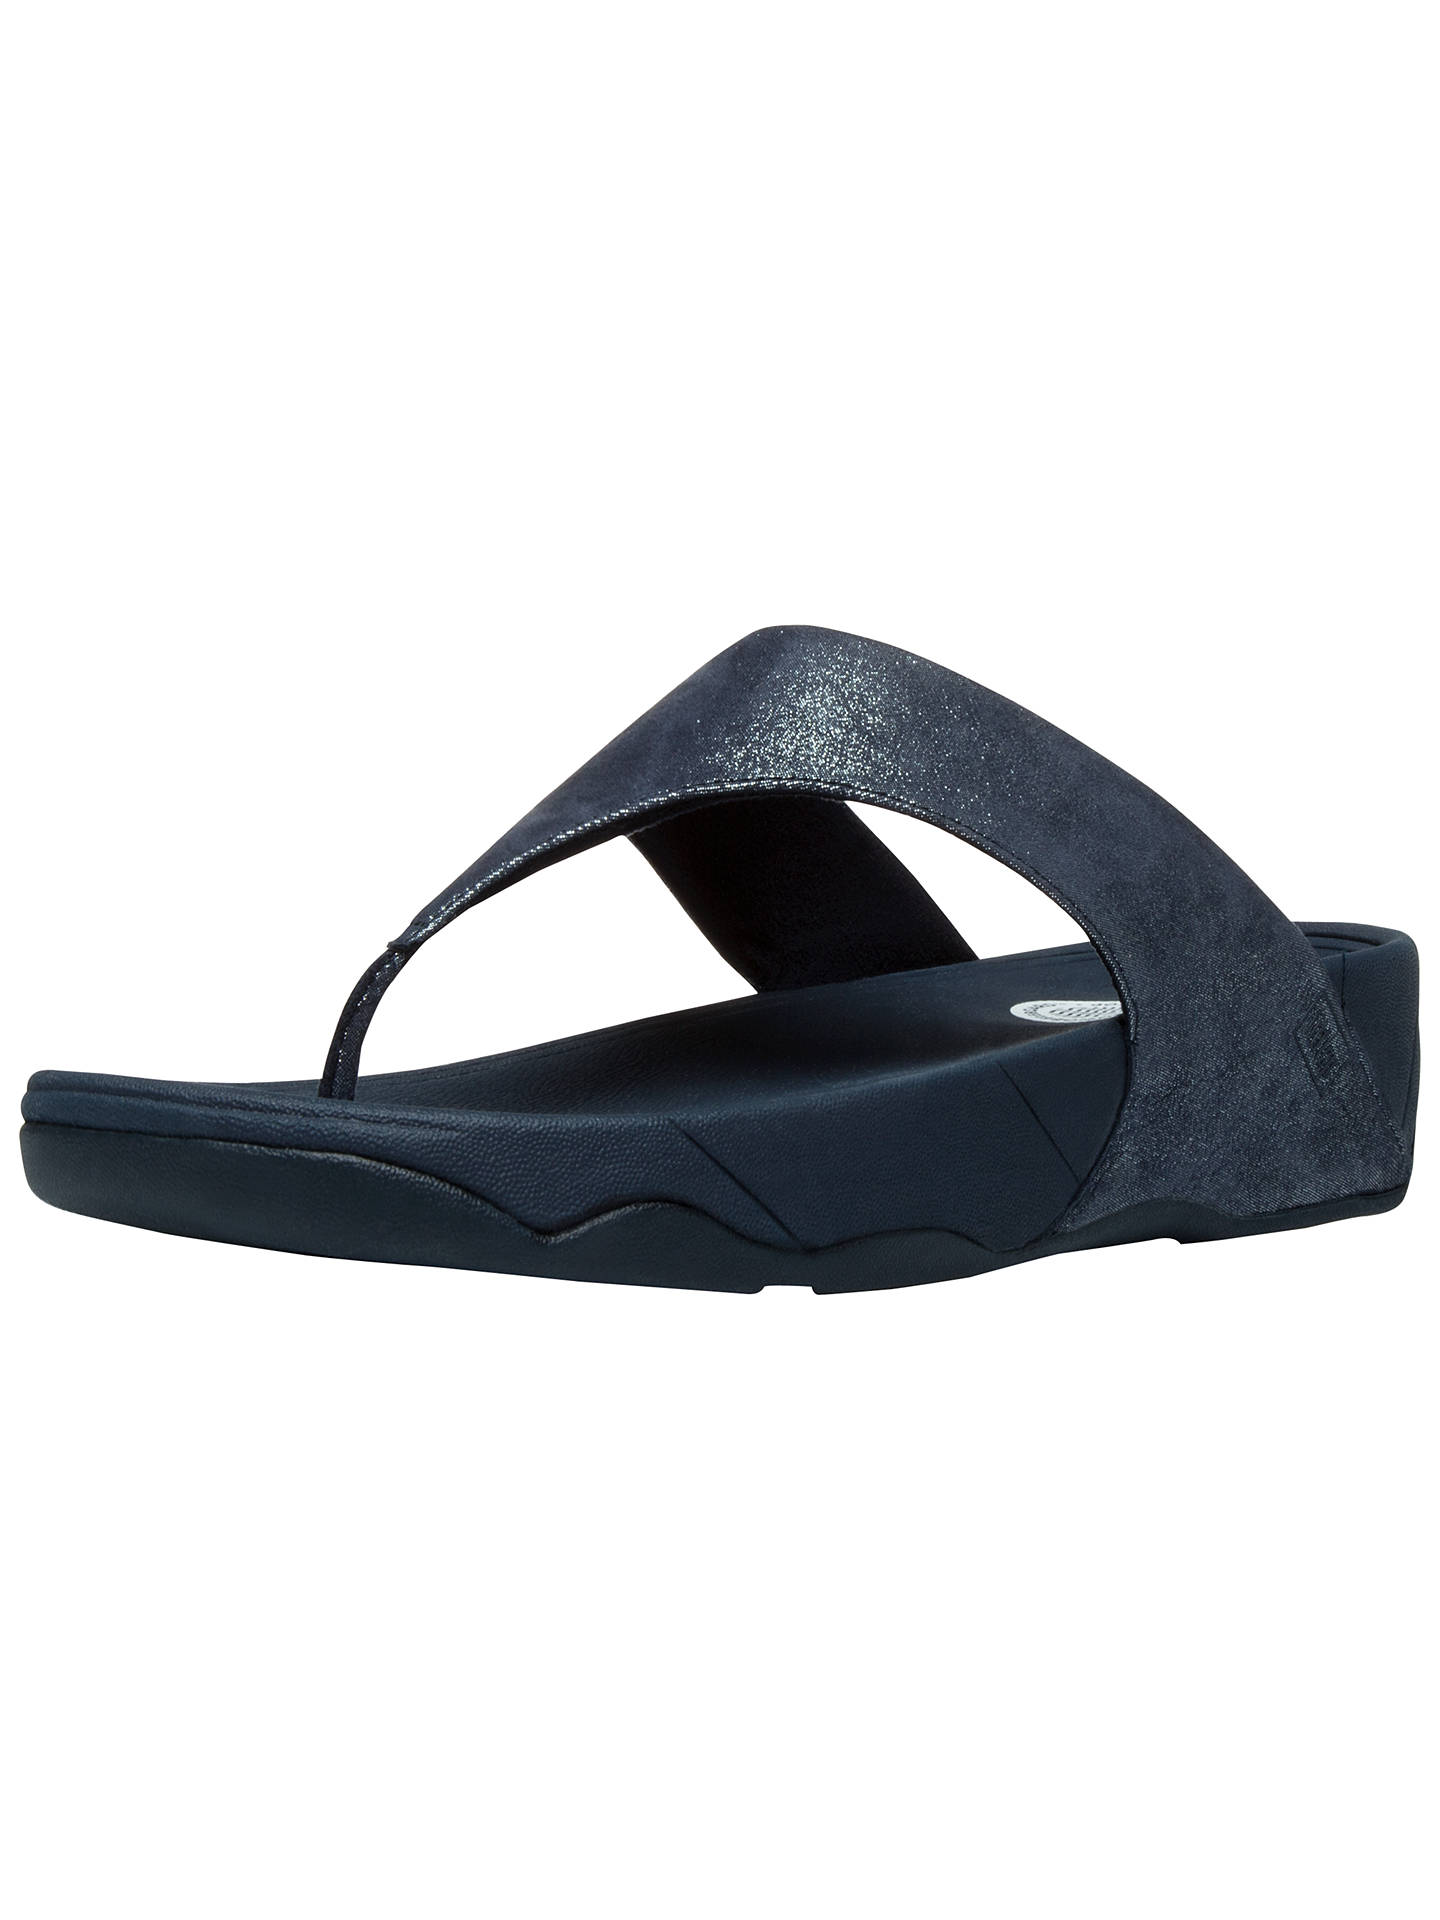 6e950c516a4c FitFlop Lulu Shimmer Suede Flip Flops at John Lewis   Partners